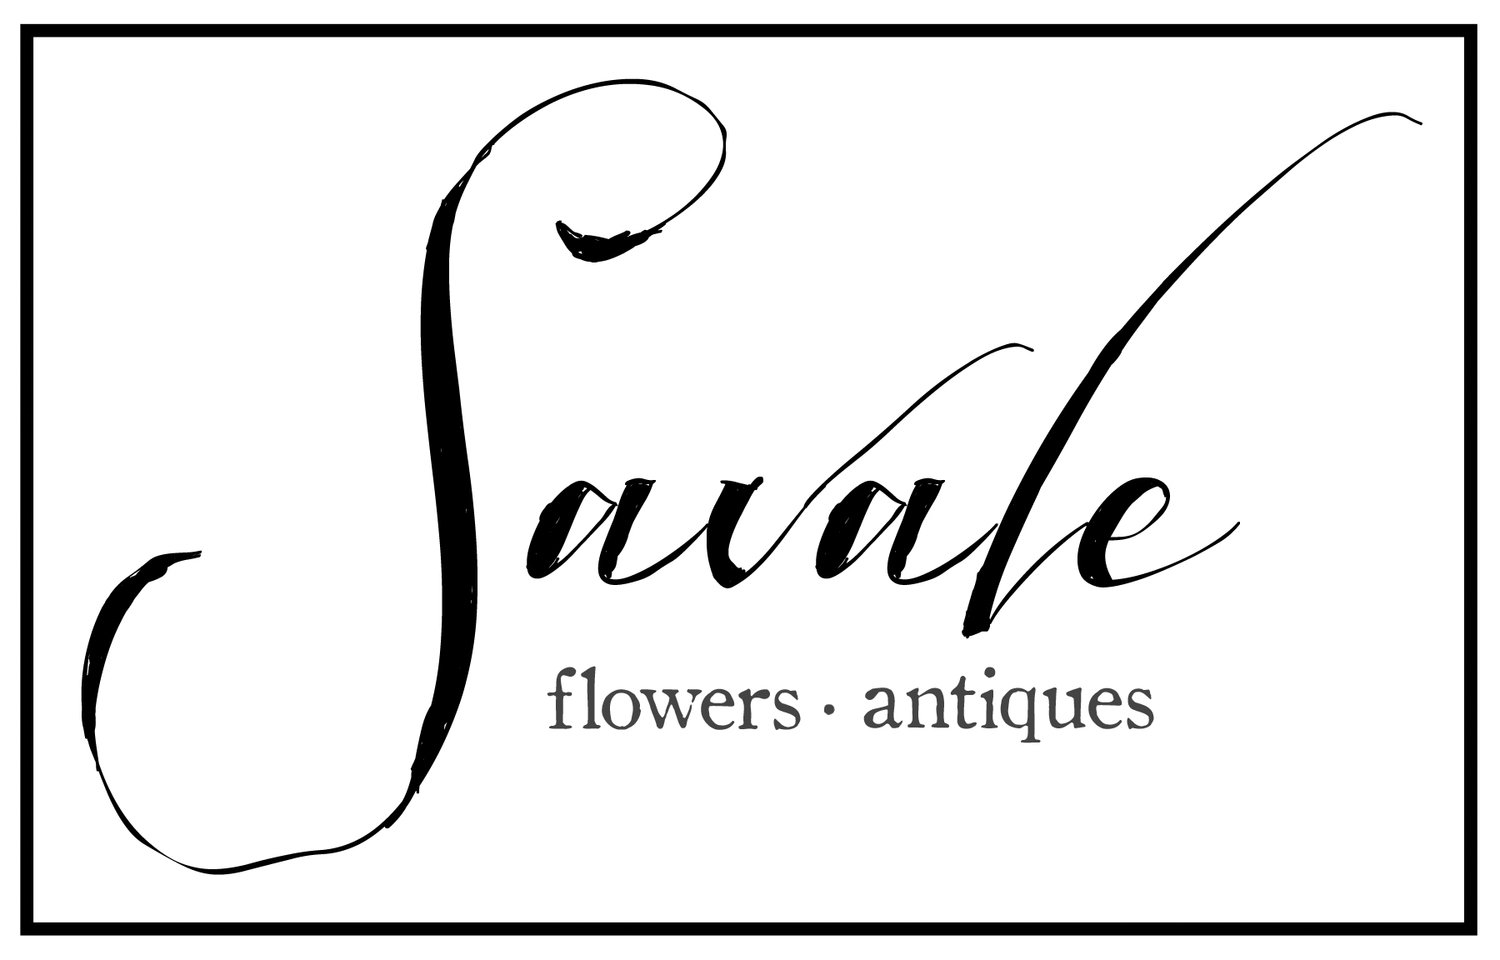 Savale Flowers Antiques